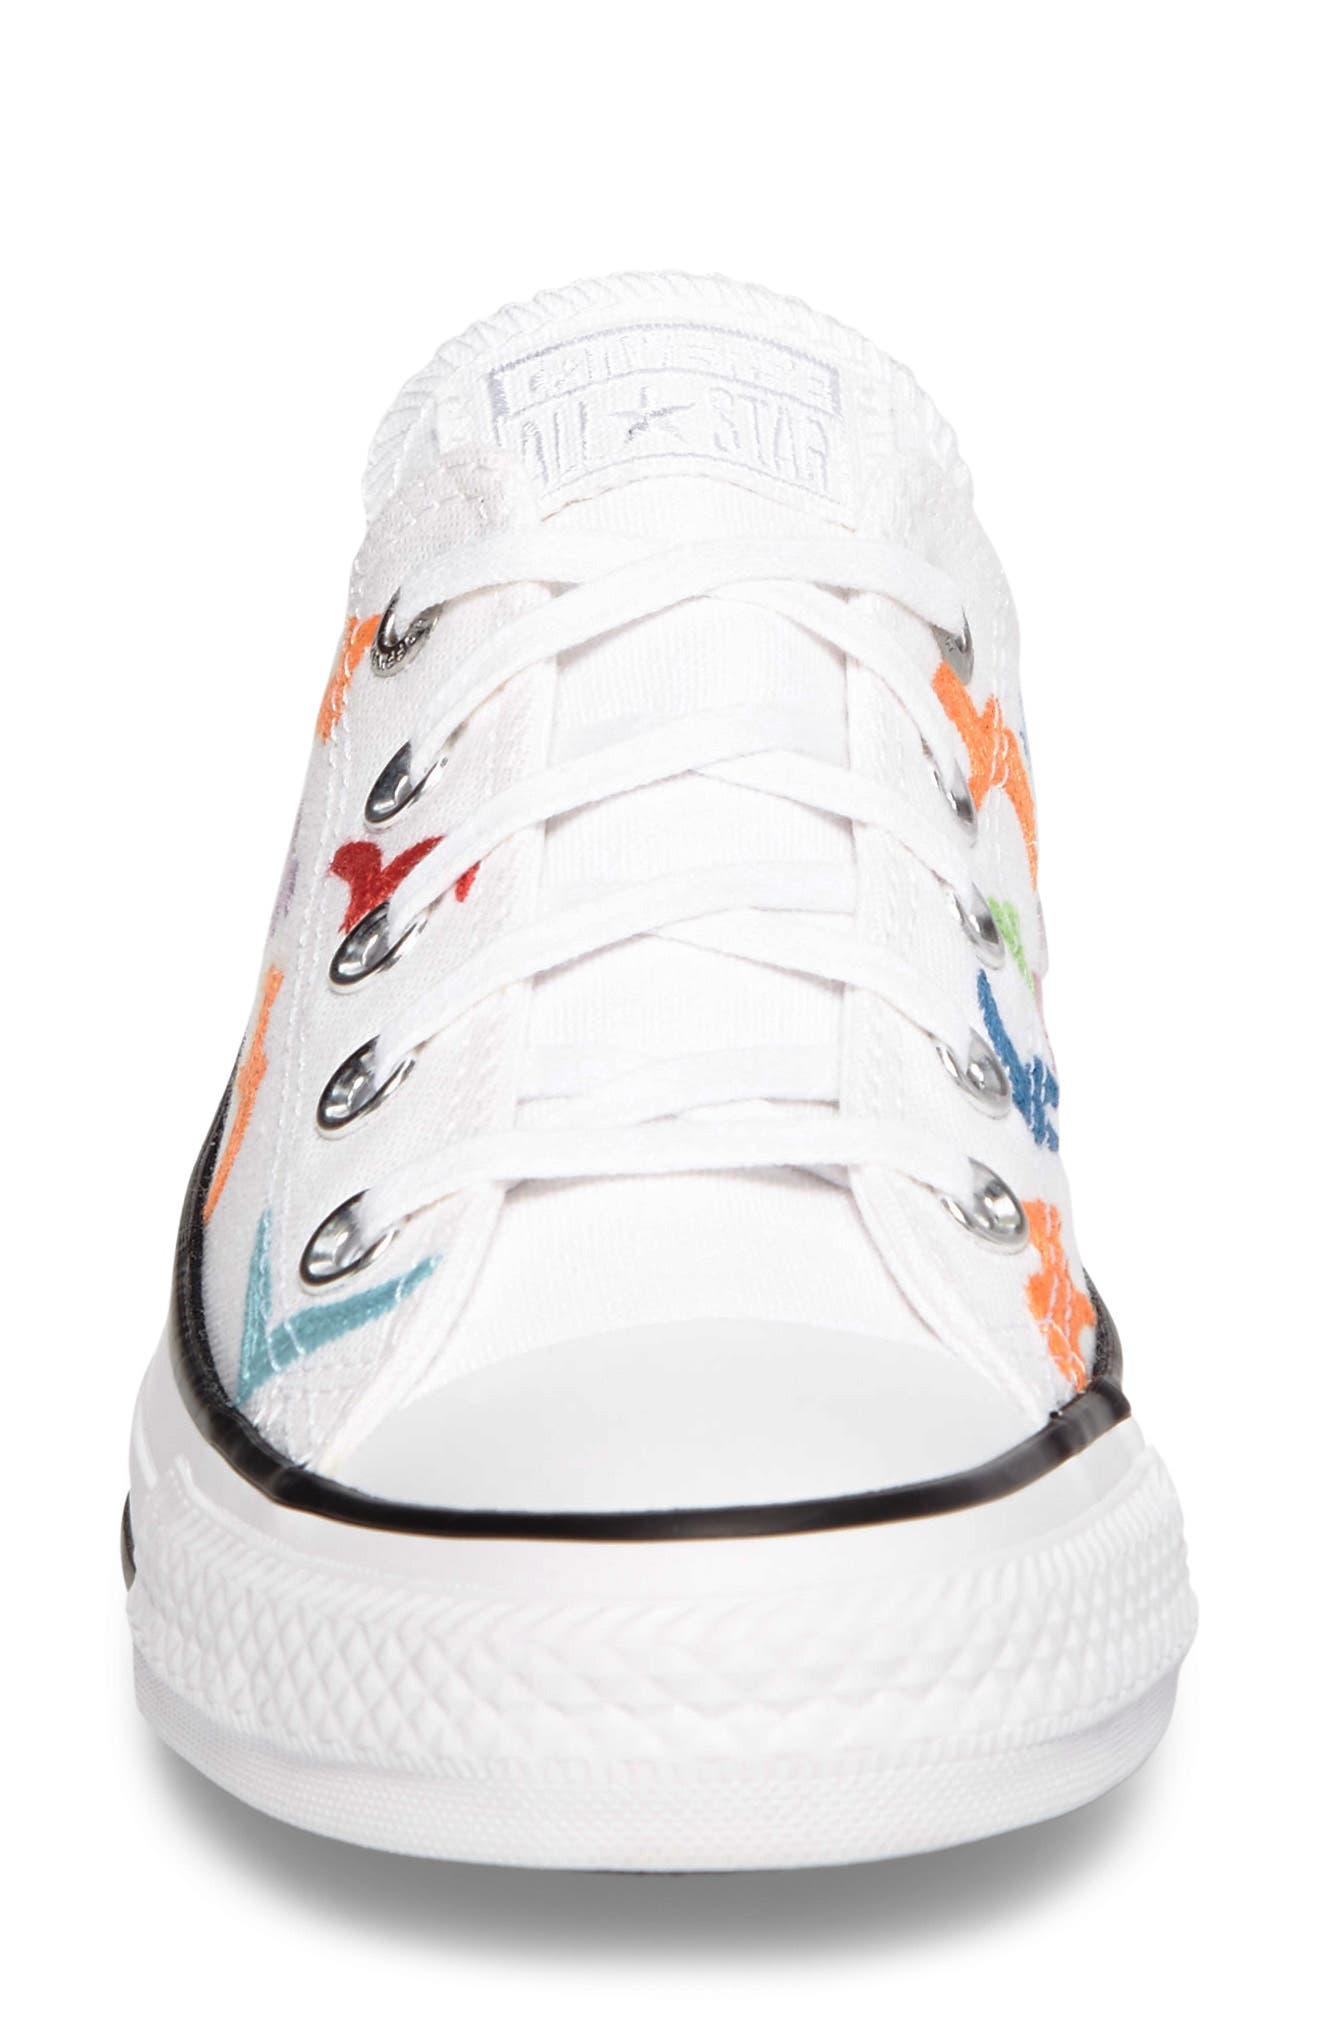 x Mara Hoffman All Star<sup>®</sup> Embroidered Ox Sneaker,                             Alternate thumbnail 4, color,                             100